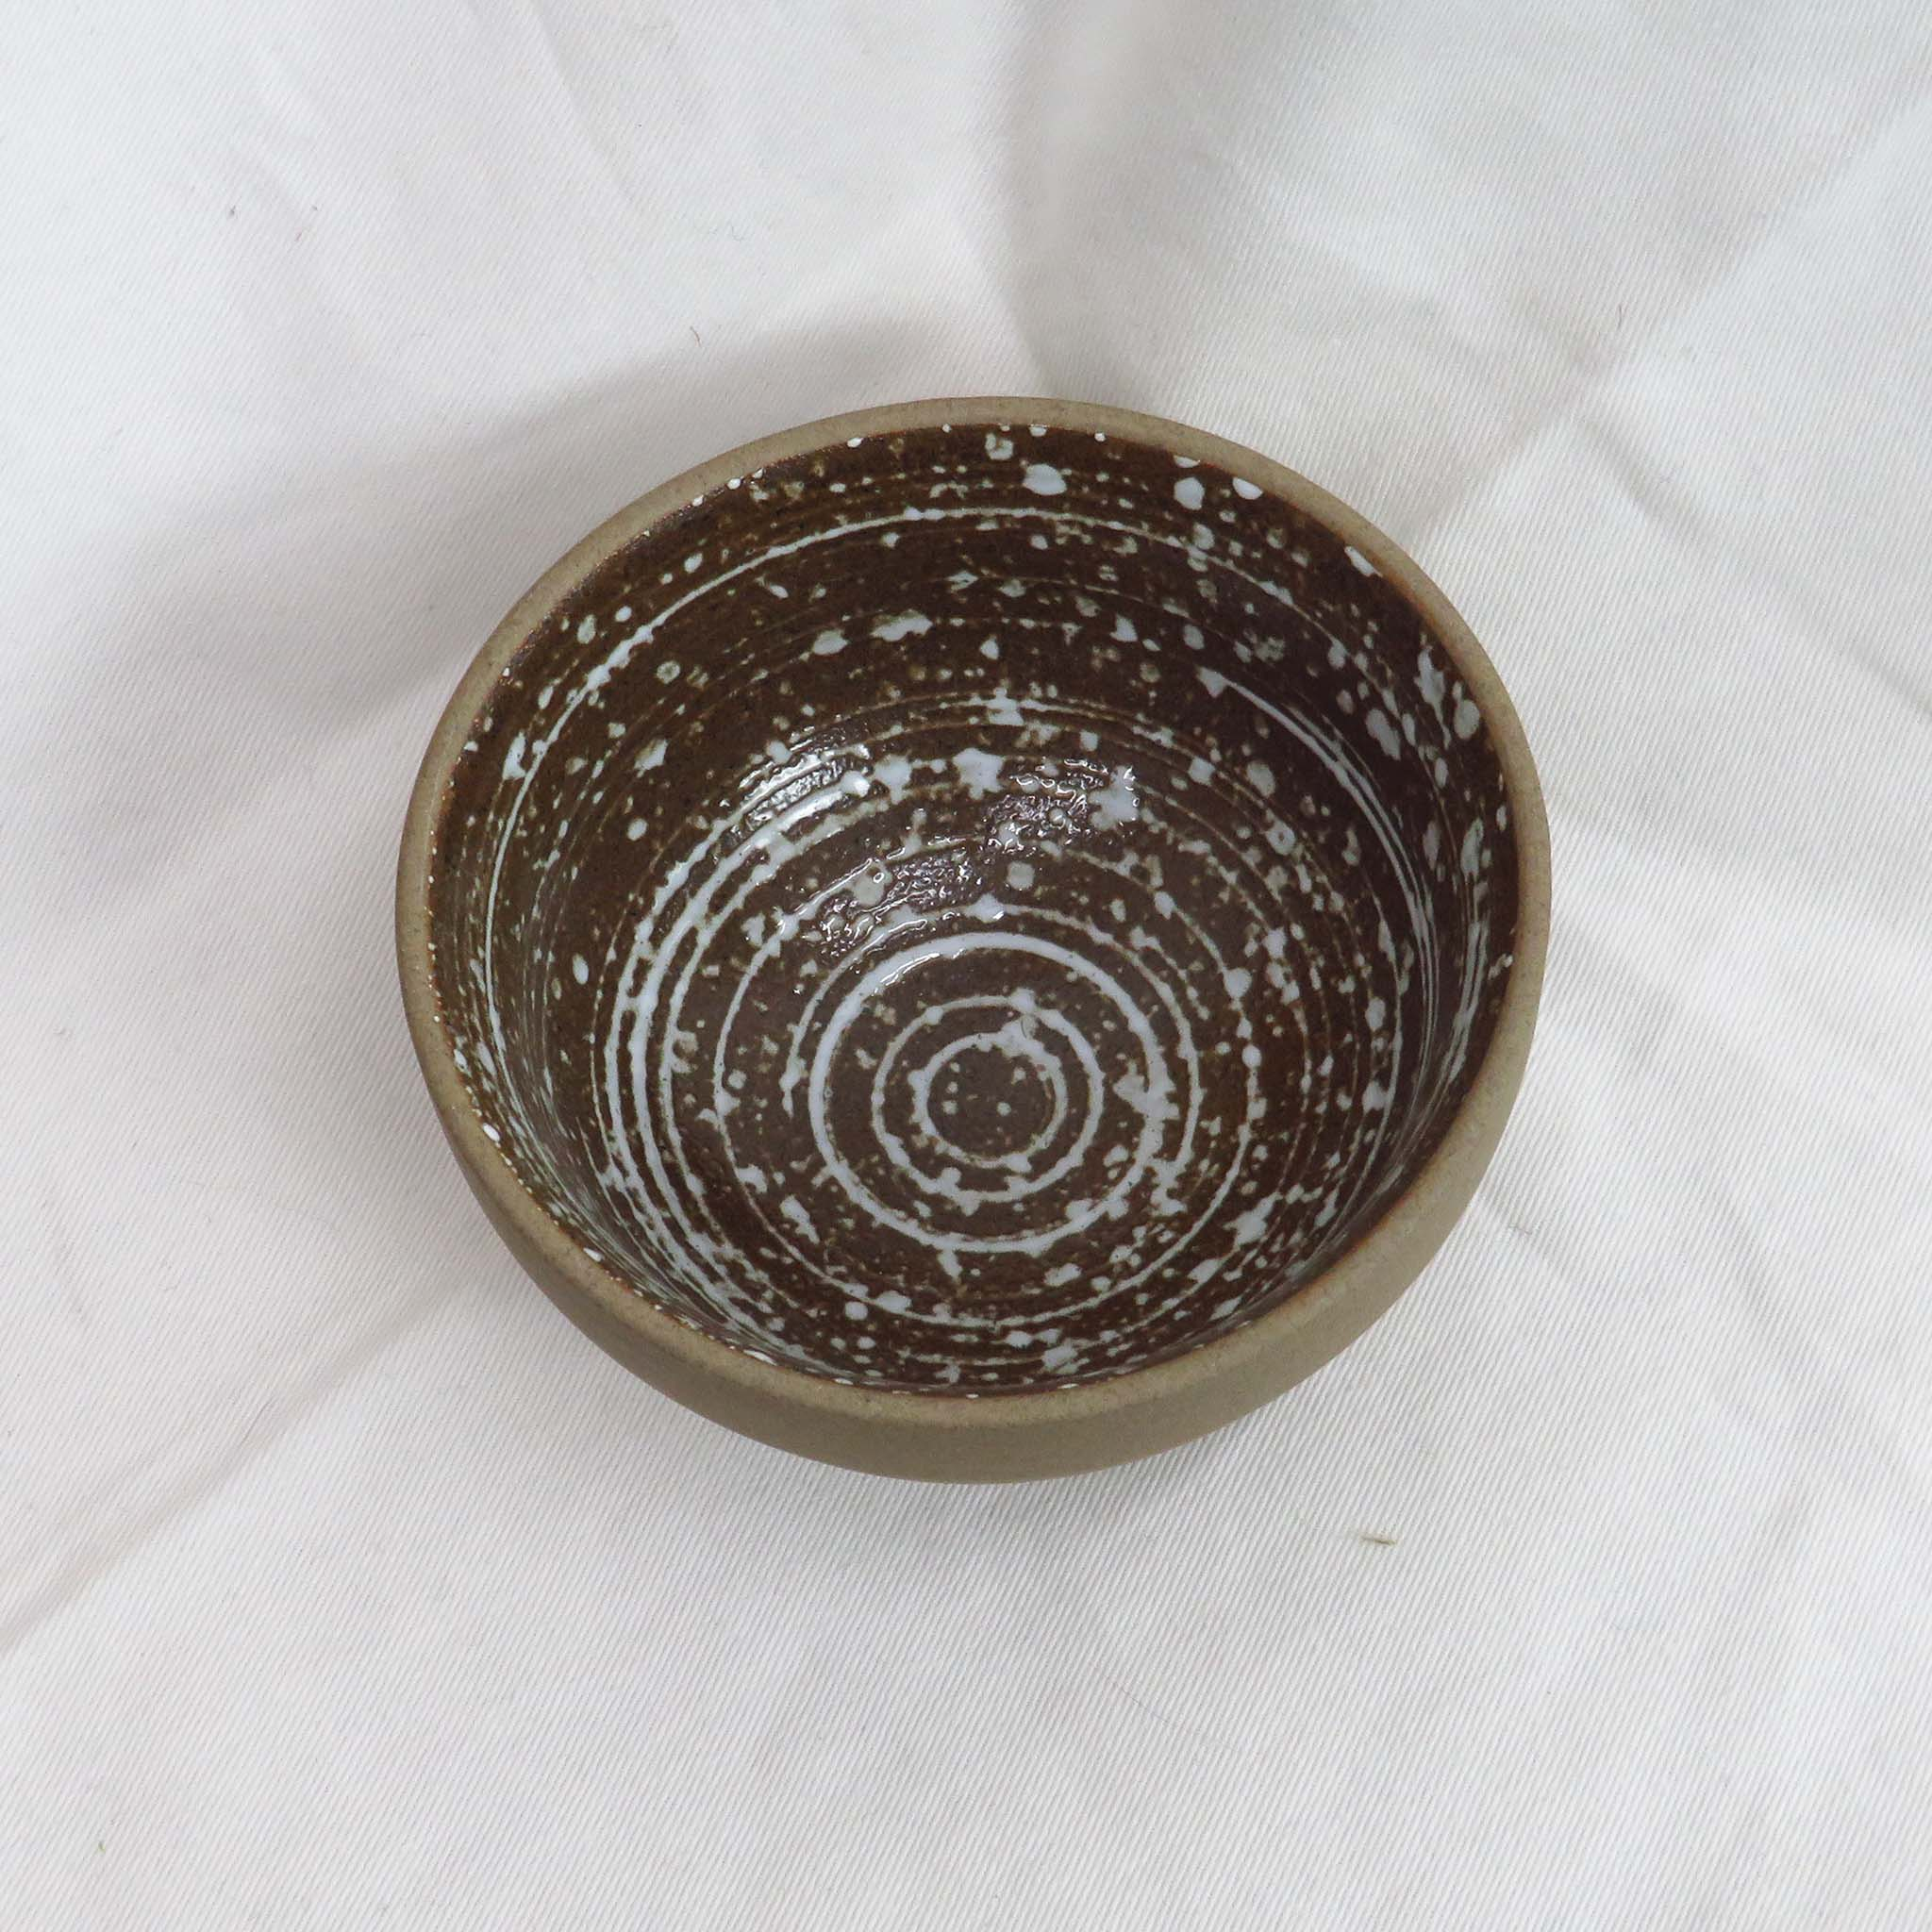 Creative Co-Op Small Footed Stoneware Bowl with Spiral Speckled White Glaze